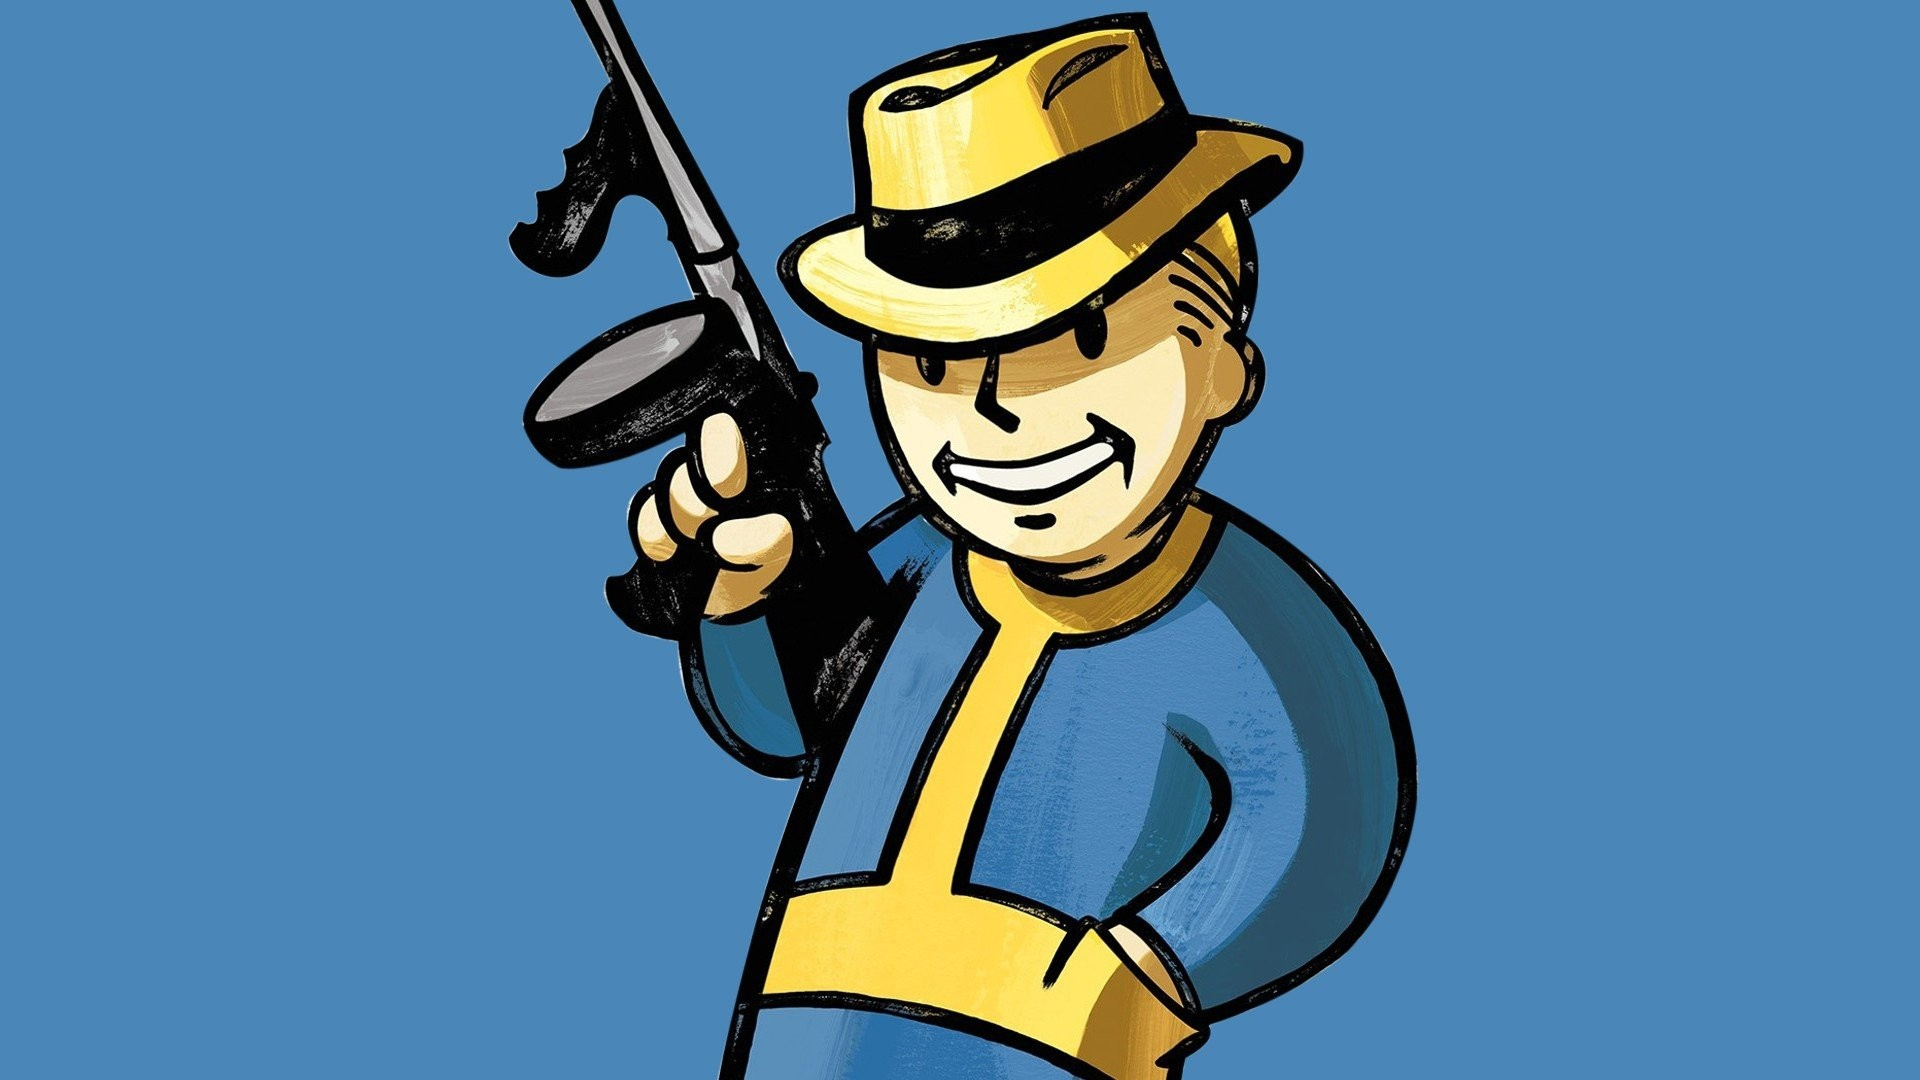 1920x1080 Fallout Bethesda Softworks pip boy role playing game wallpaper